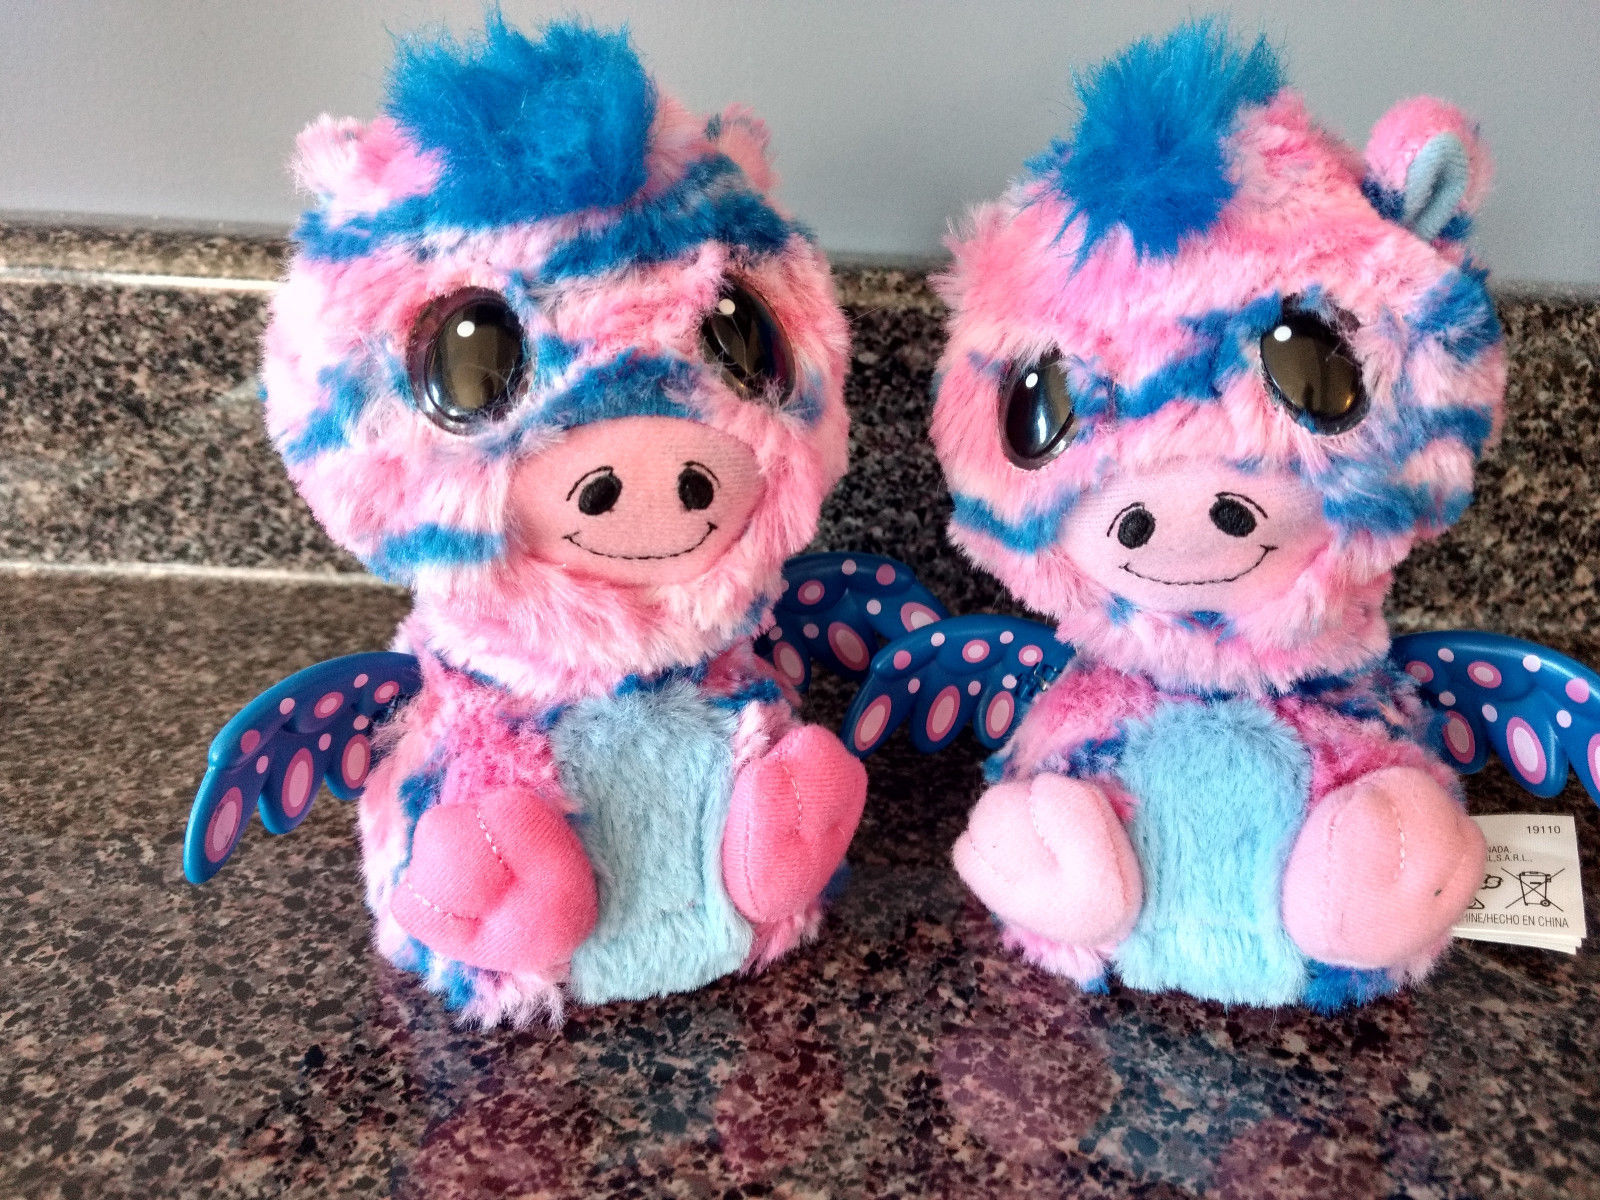 Already Hatched Hatchimals Surprise Twins - Pink and blue Zuffin